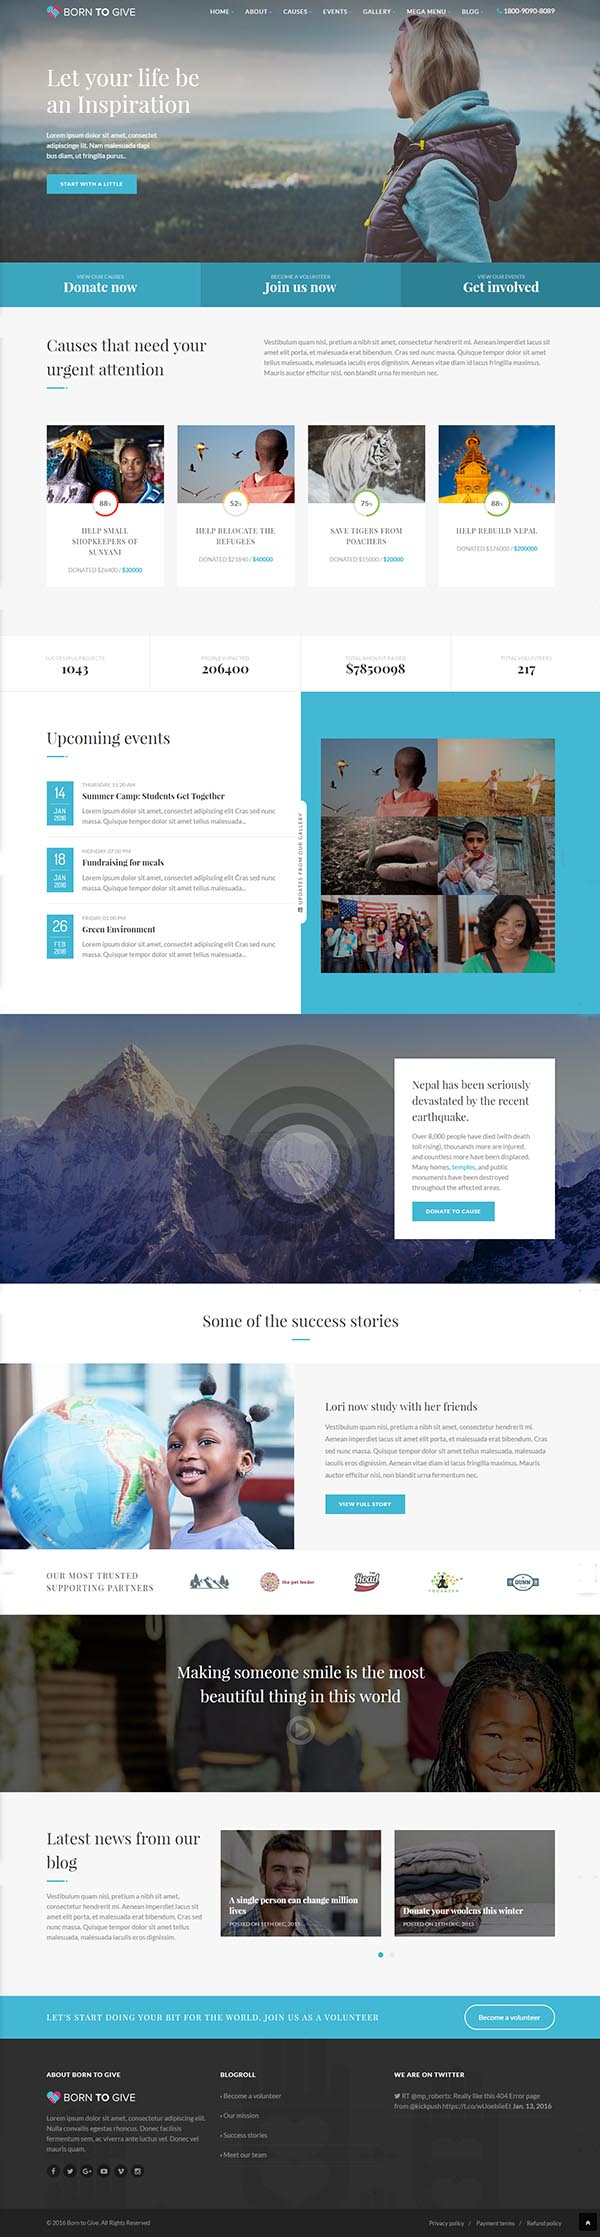 Born To Give - Charity Crowdfunding Responsive HTML5 Template